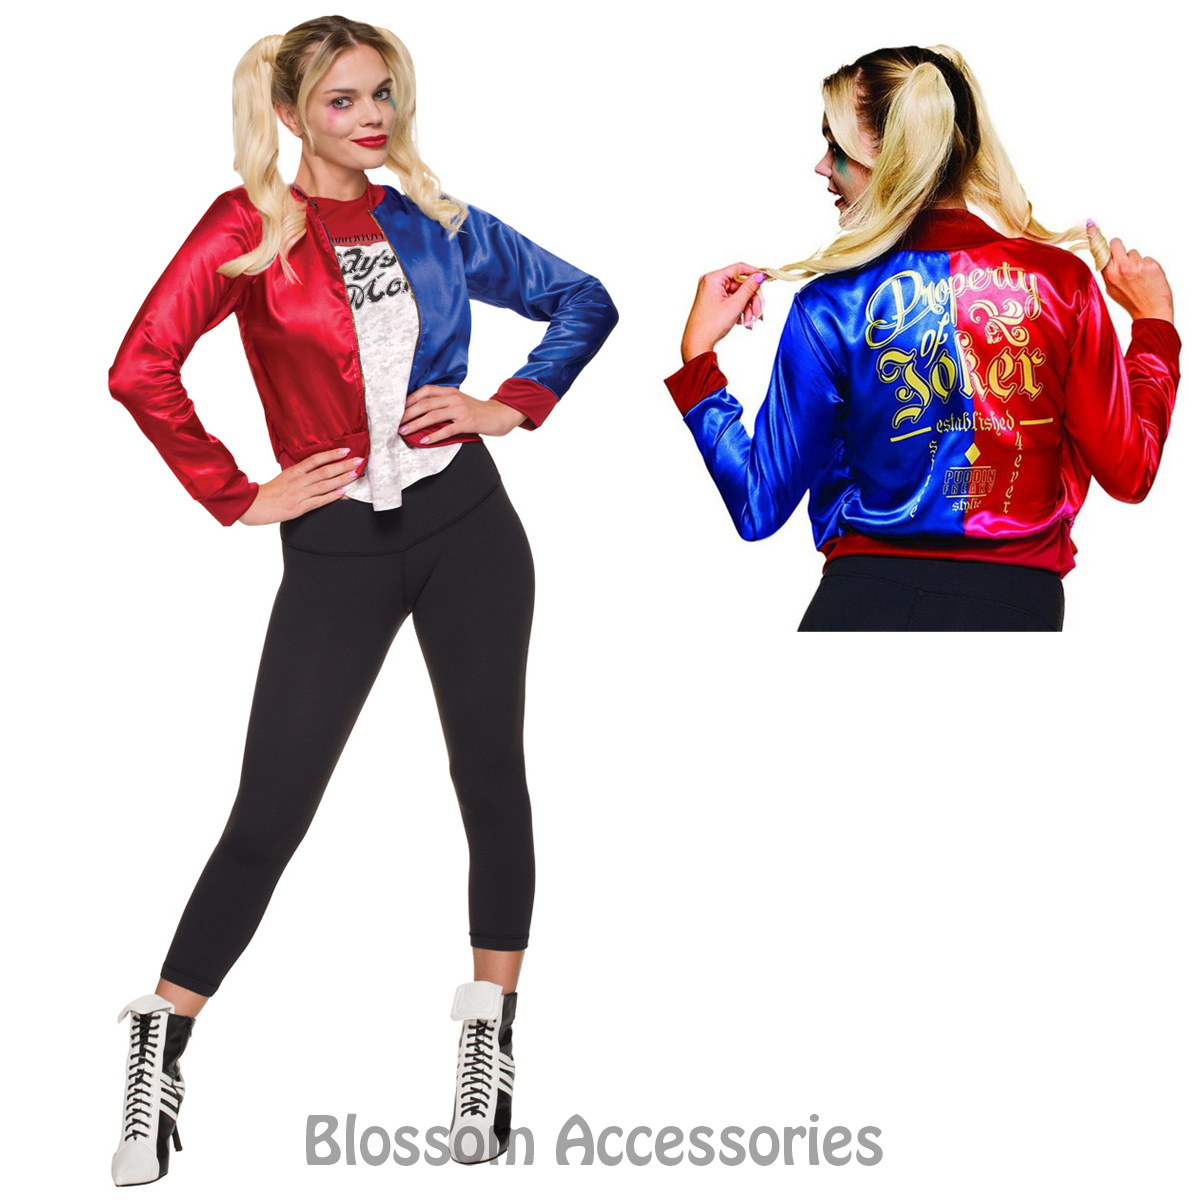 cl966 suicide squad ladies deluxe harley quinn top harley quinn's